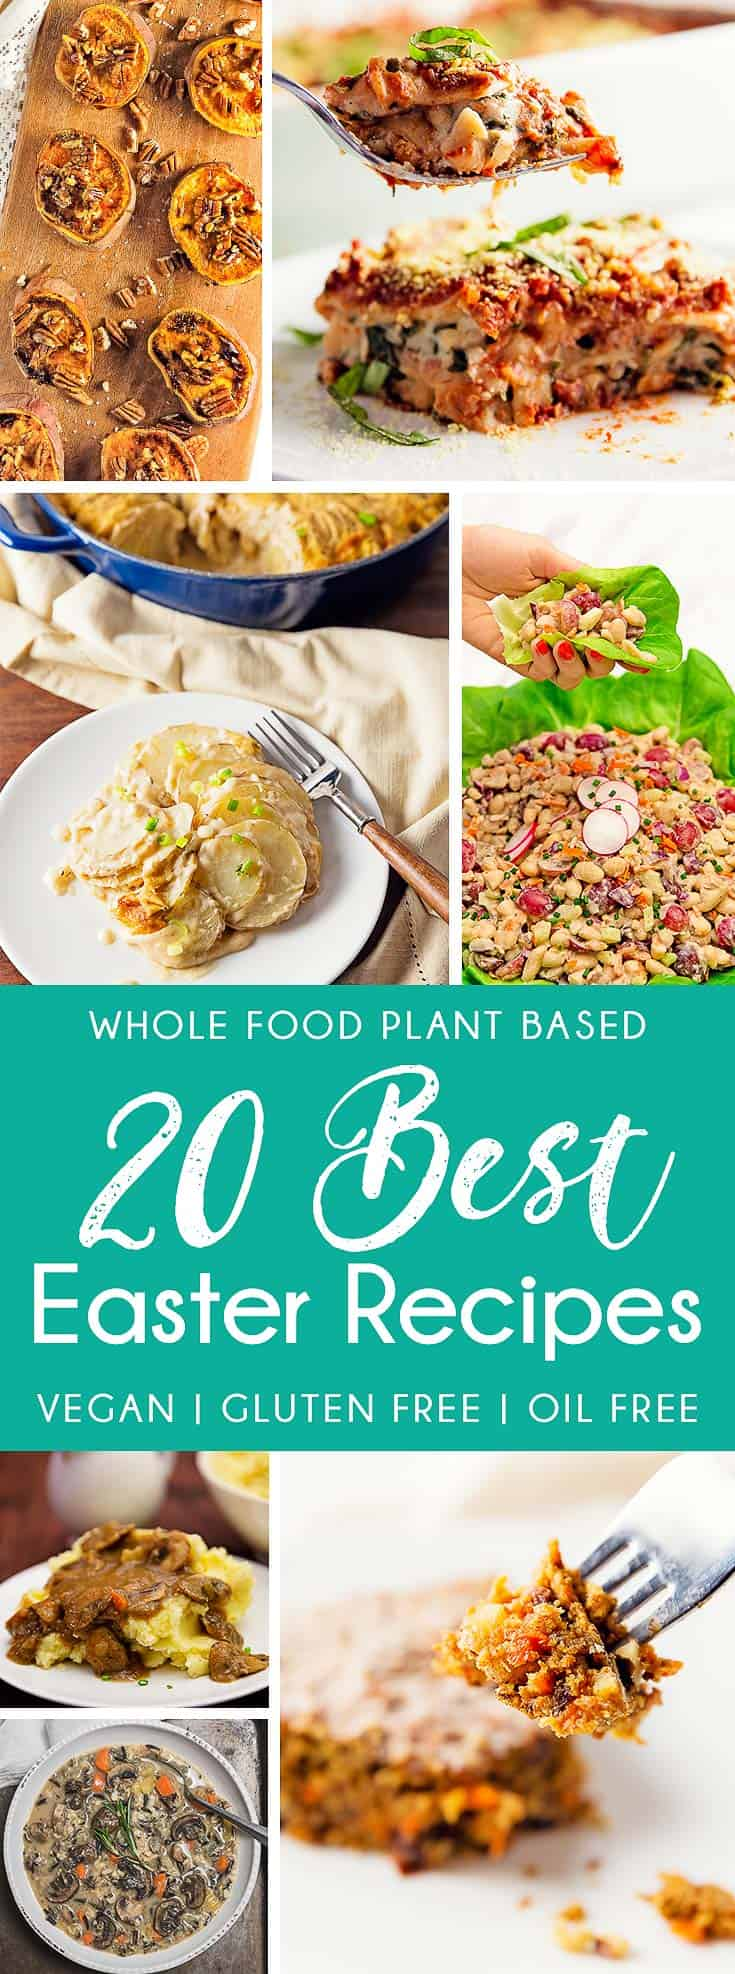 20 best easter recipes monkey and me kitchen adventures 20 best easter recipes easter recipes holiday recipes plant based vegan need some whole food plant based recipe forumfinder Images